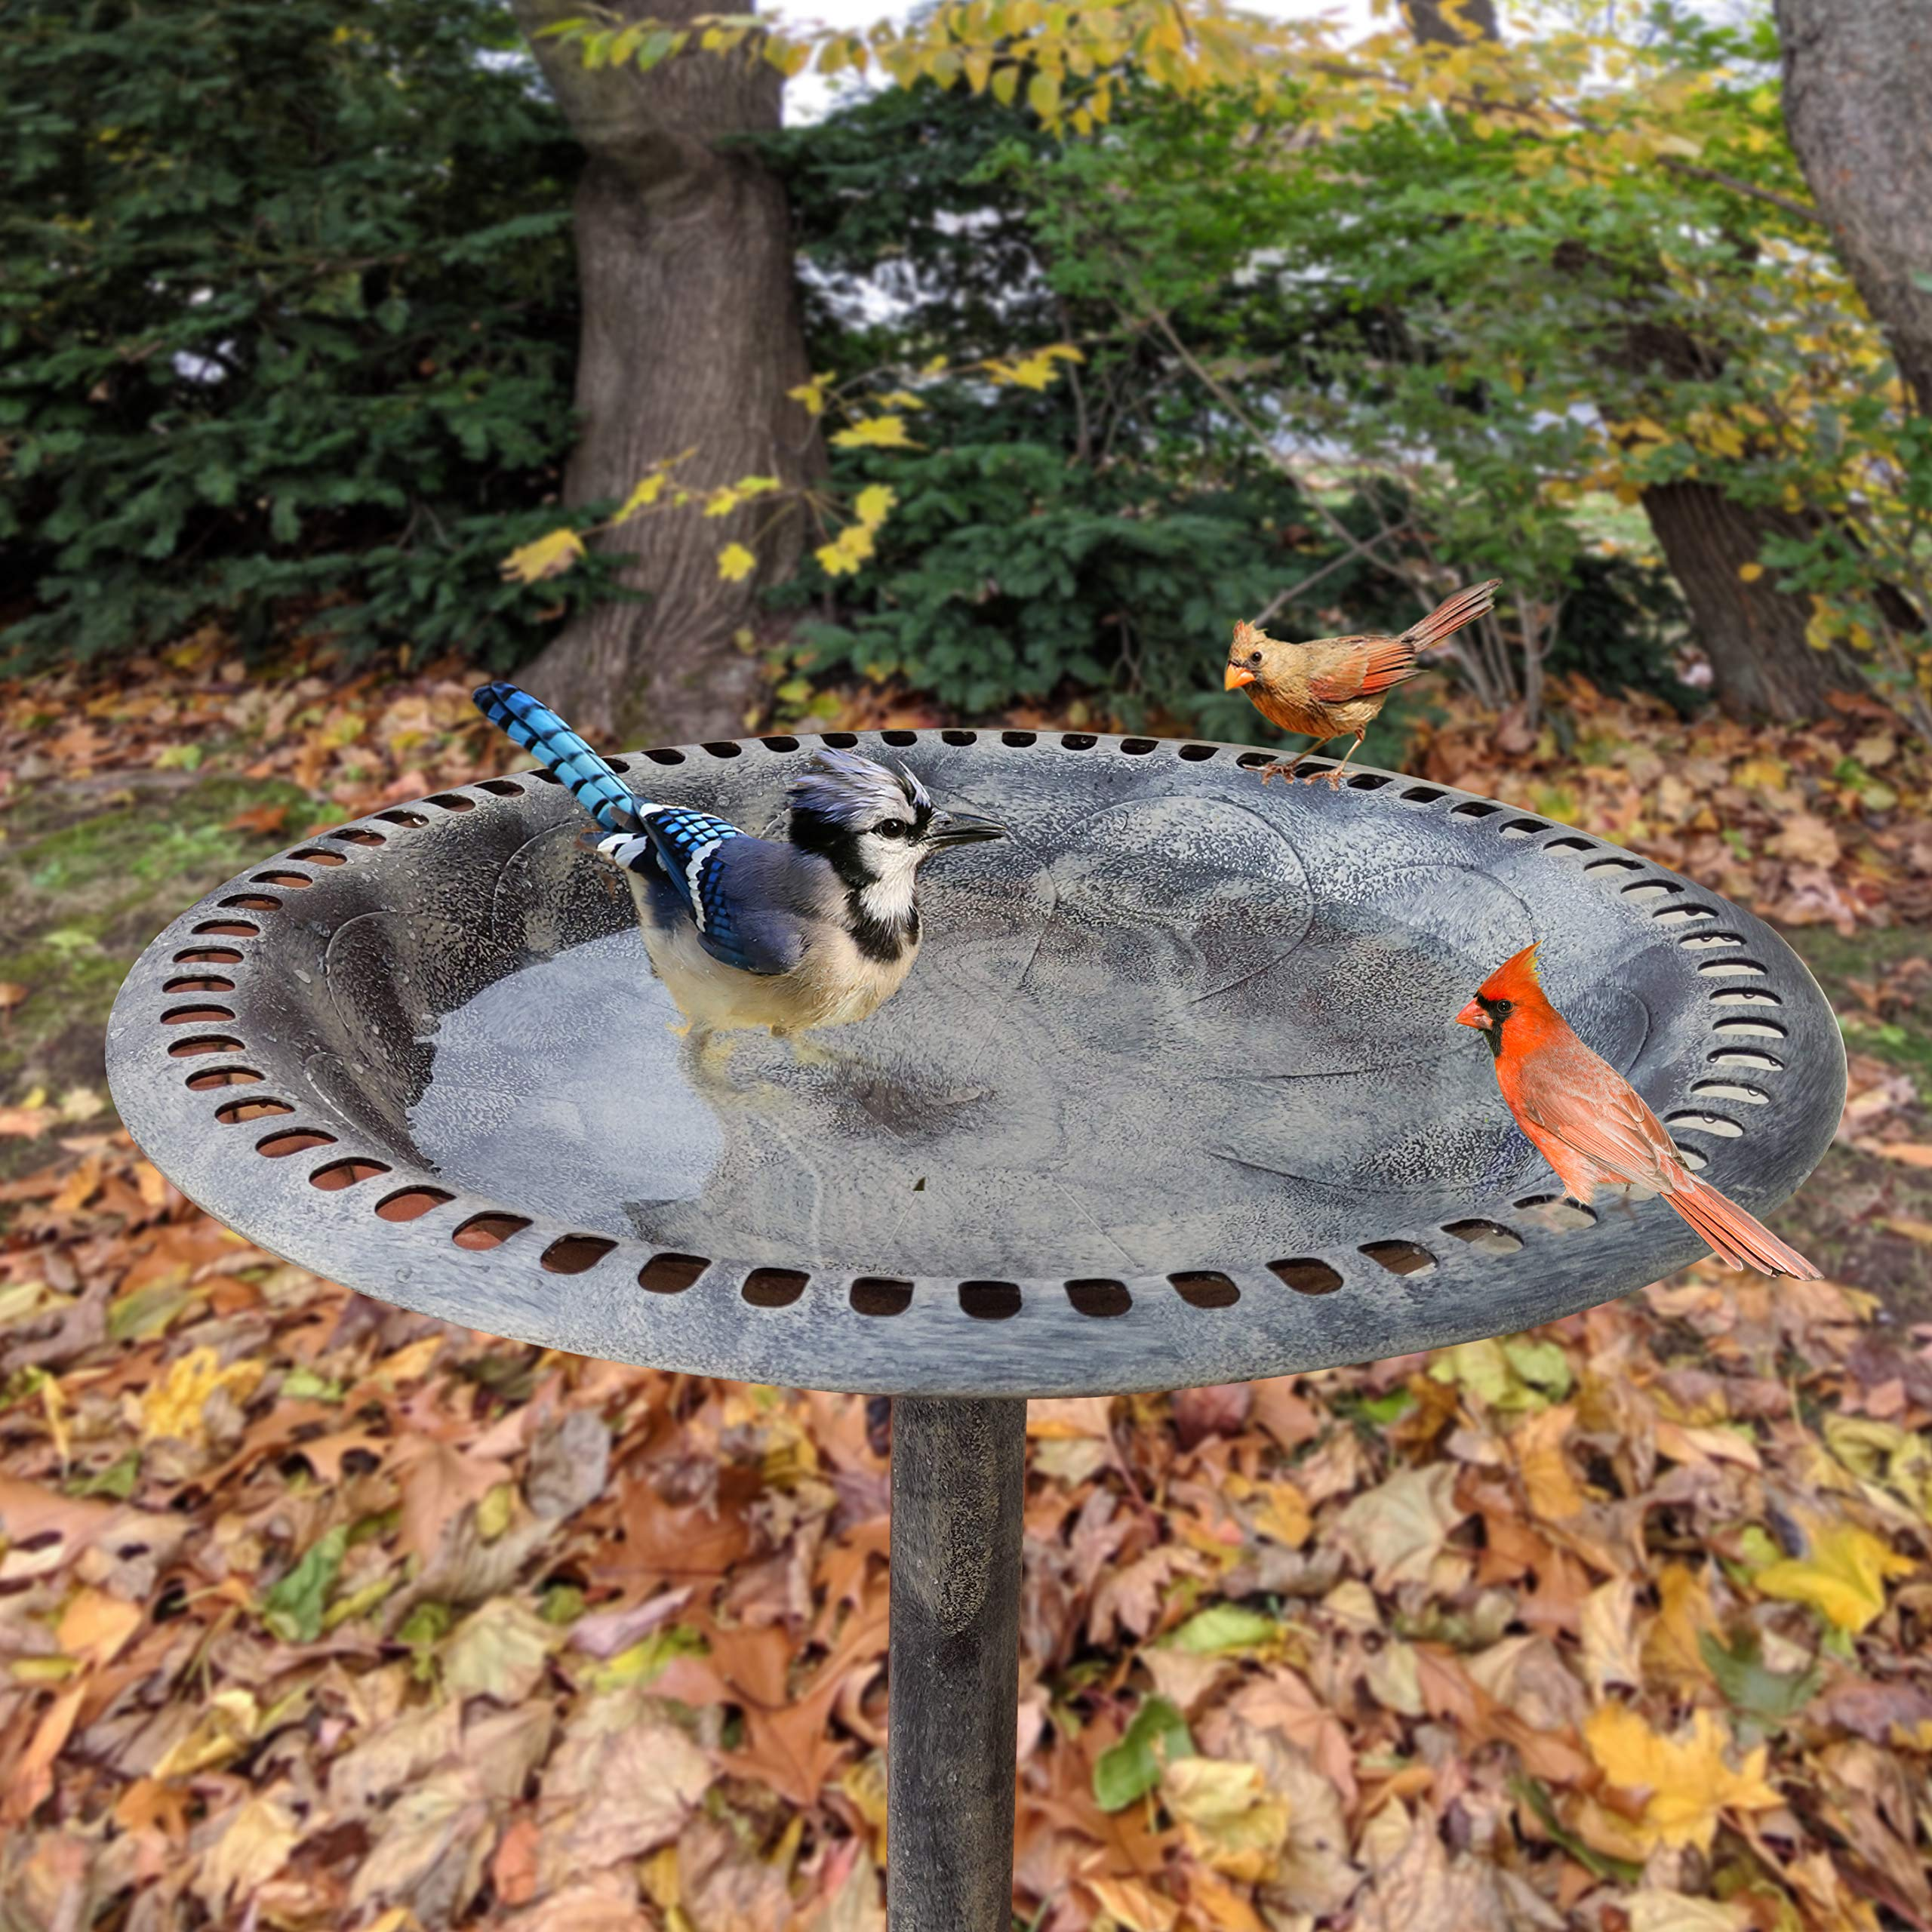 Gray Bunny GB-6906GRY, Outdoor Pedestal Bird Bath Stand with Steel Ground Anchors, Stylish & Elegant Faux Stone Designed Garden Ornament Made from Plastic, Lawn Patio Garden Sculpture Water Container by Gray Bunny (Image #4)